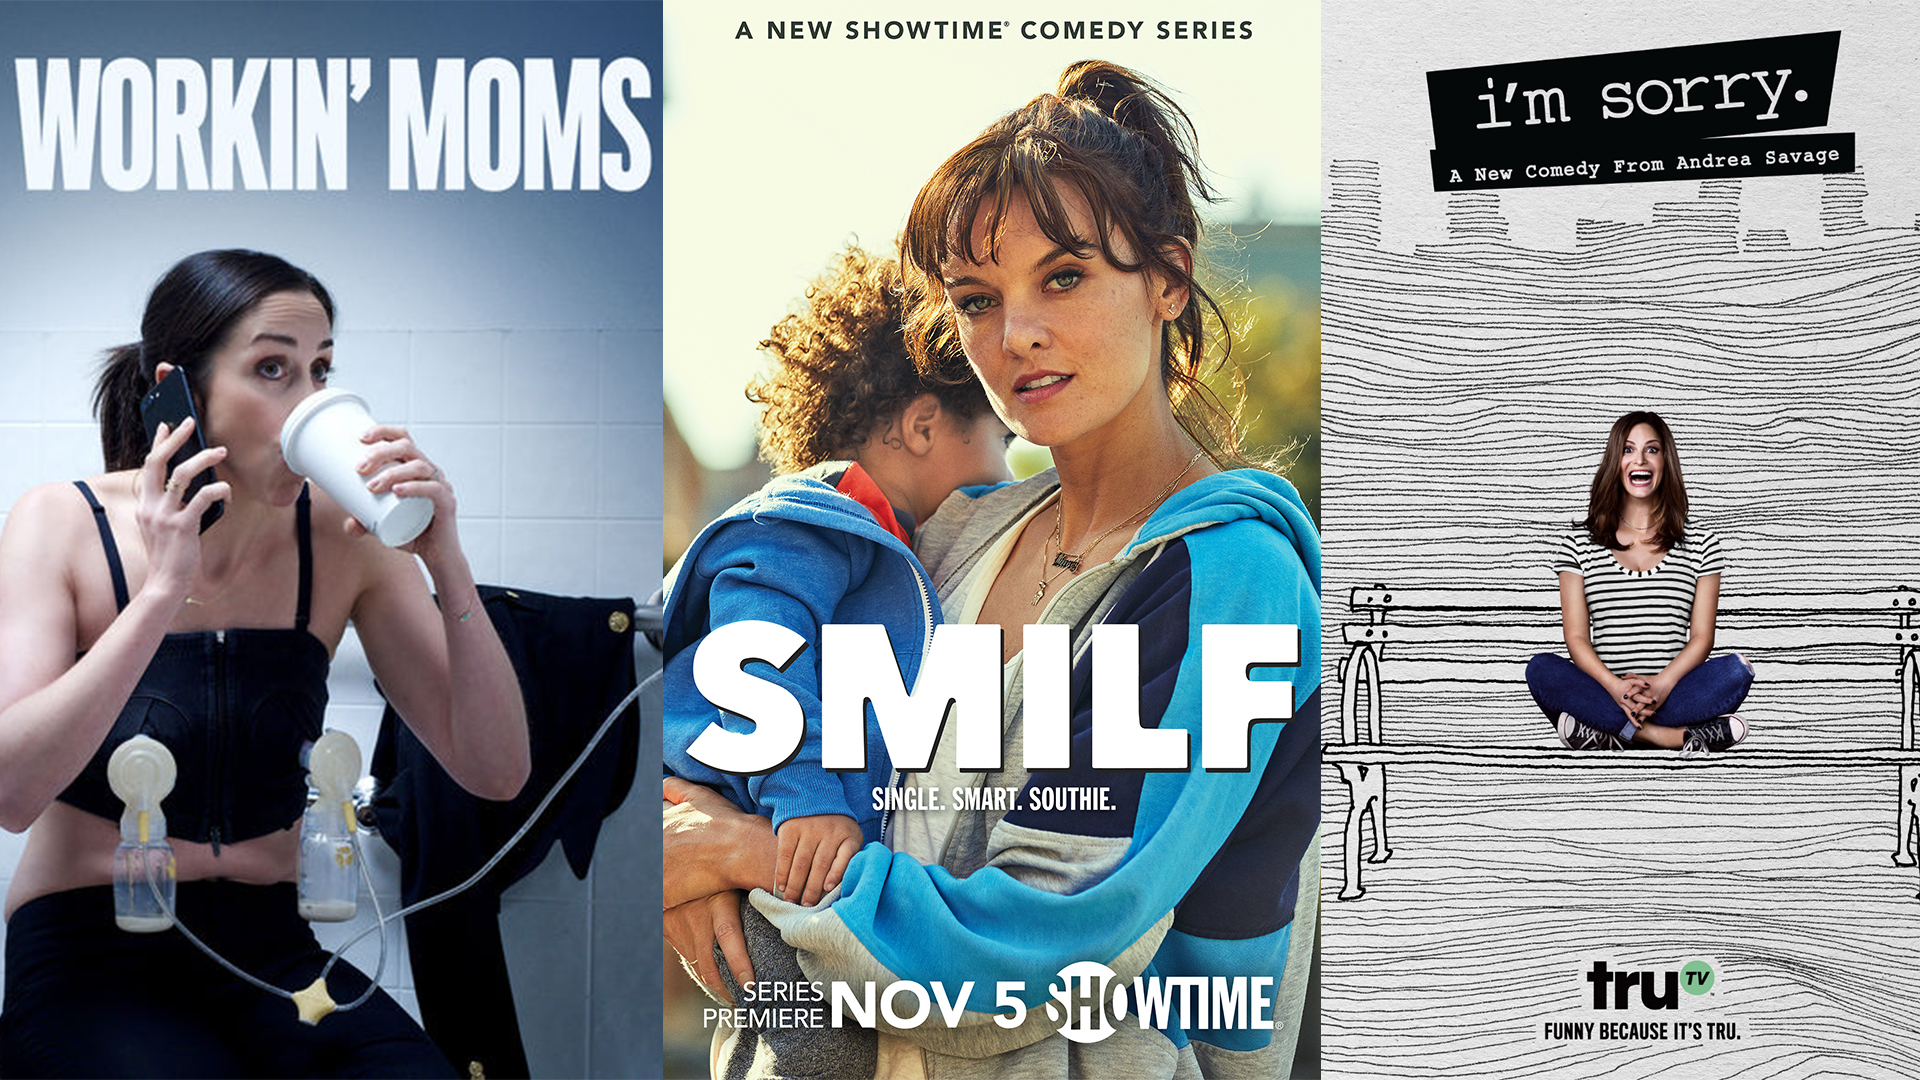 Andrea Savage Sexy 9 tv shows about modern moms you can easily binge on